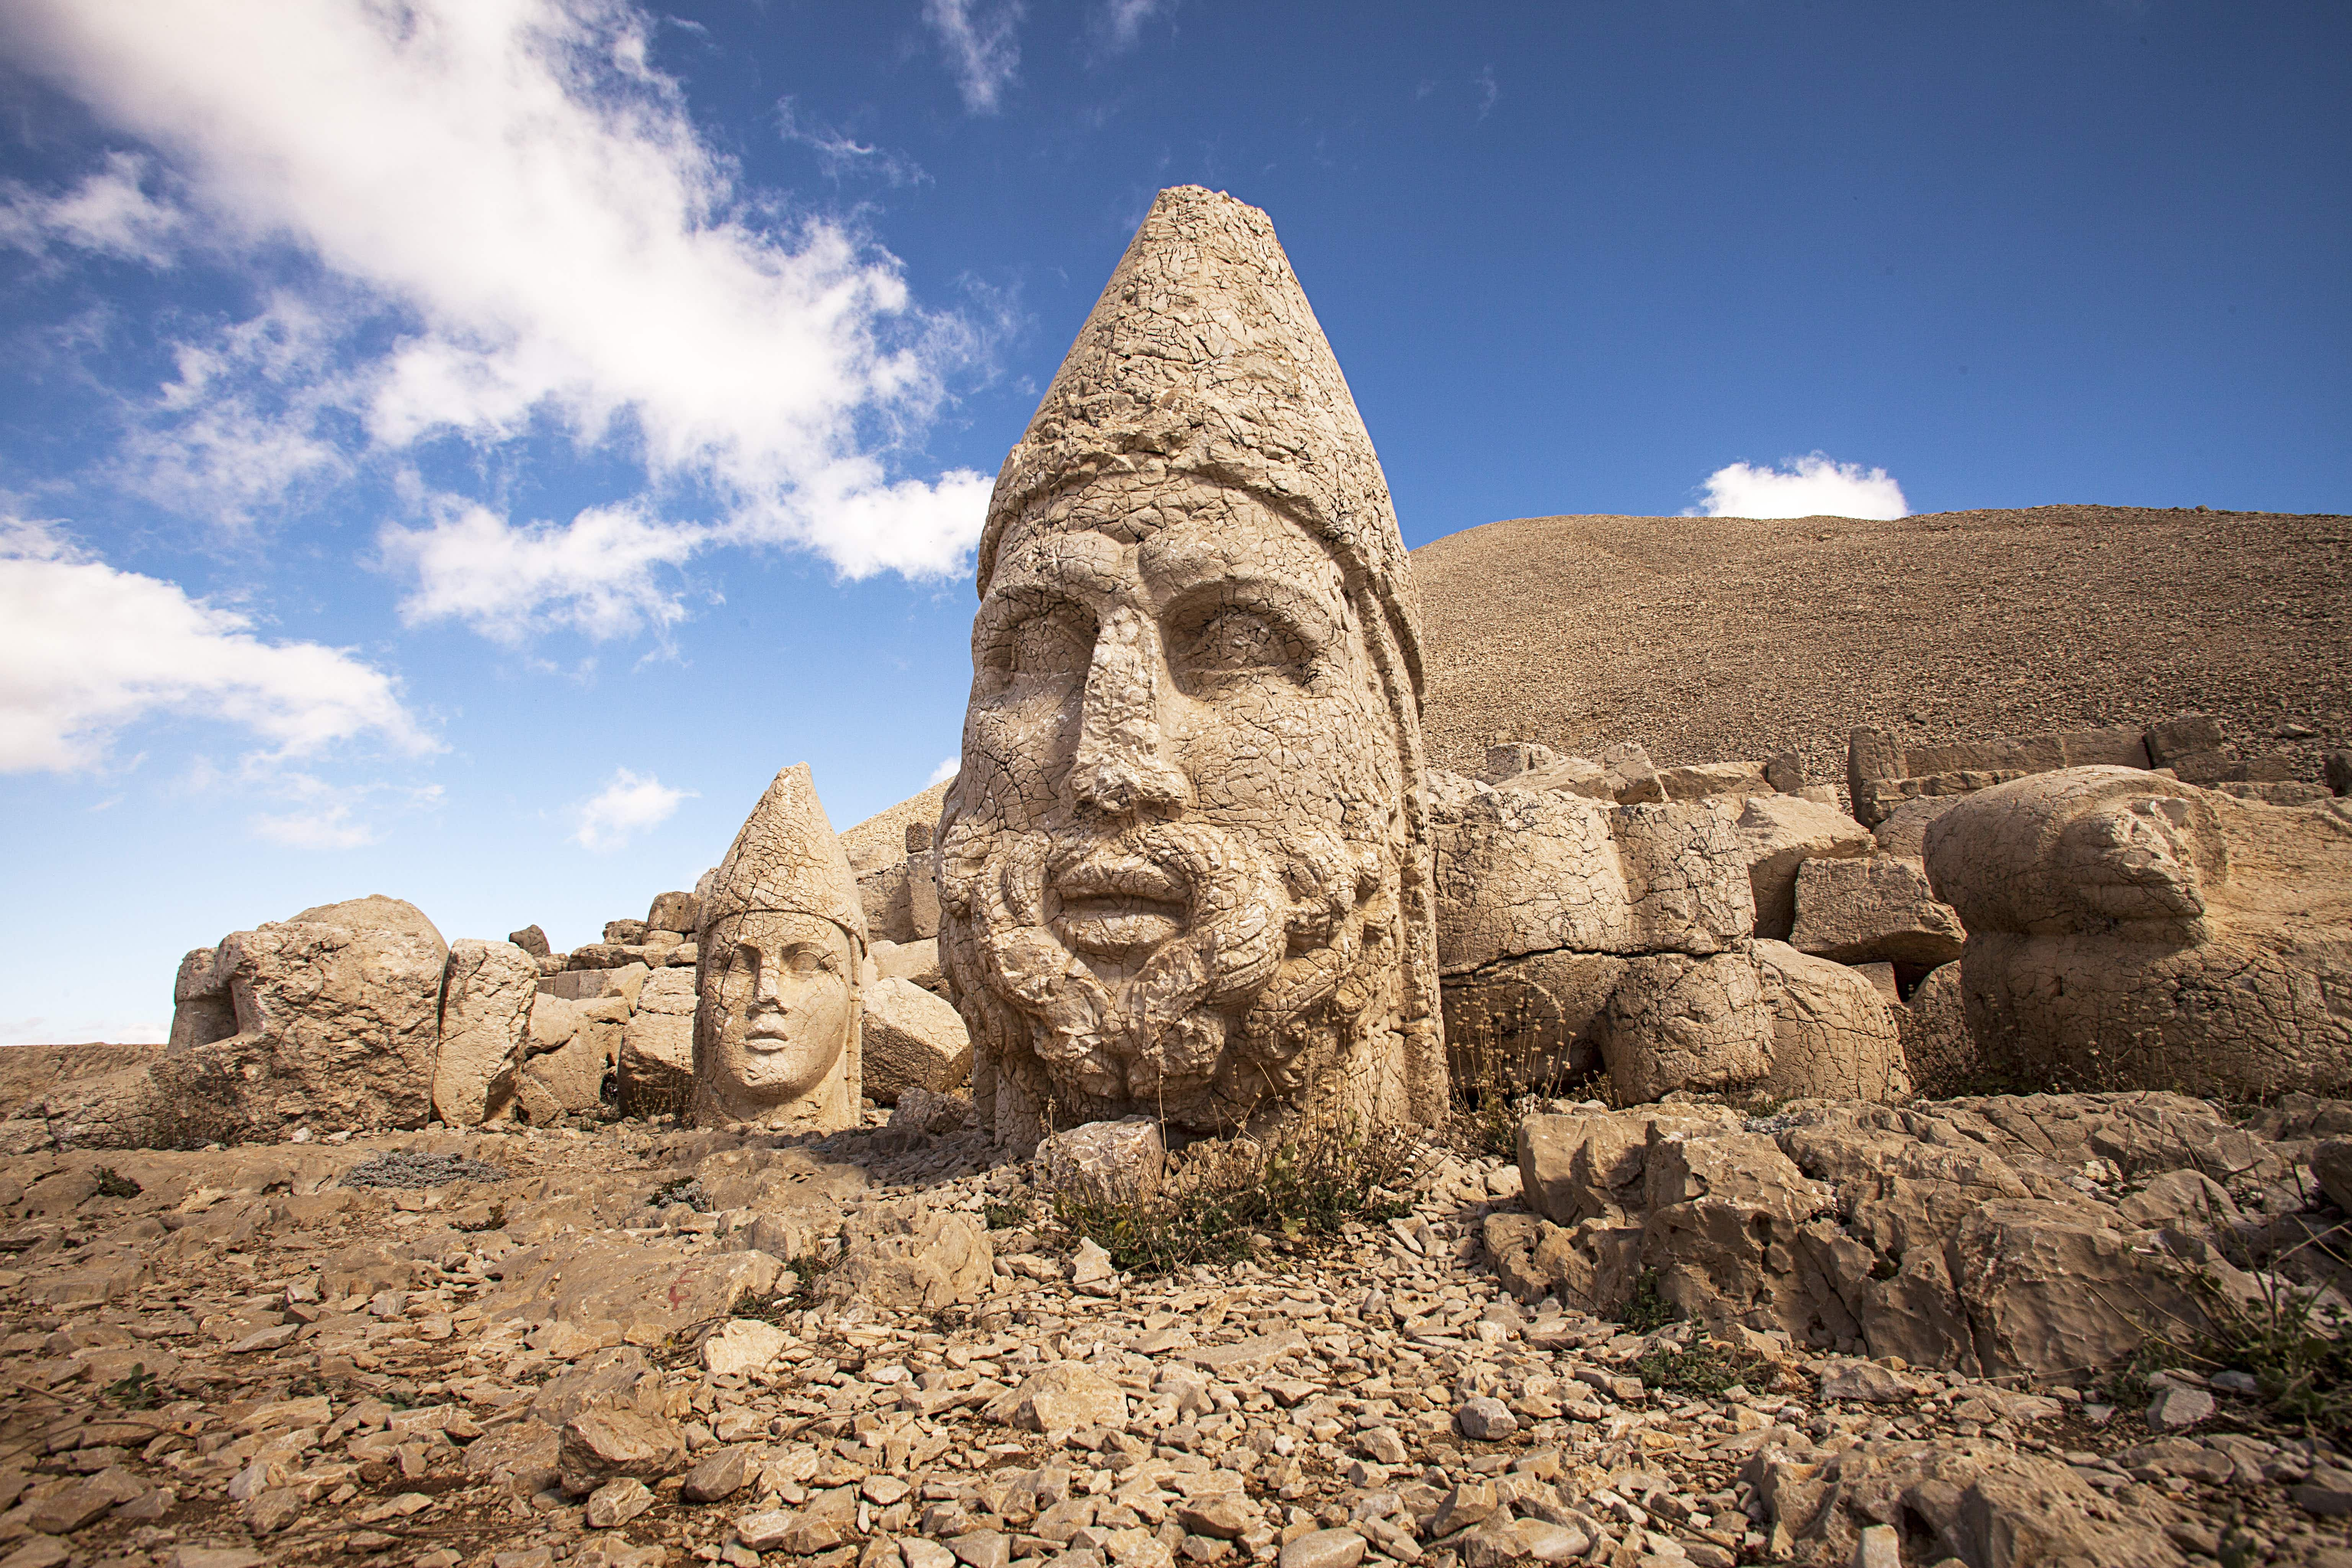 The famous disembodied heads at Nemrut Dağı © f28production / Getty Images